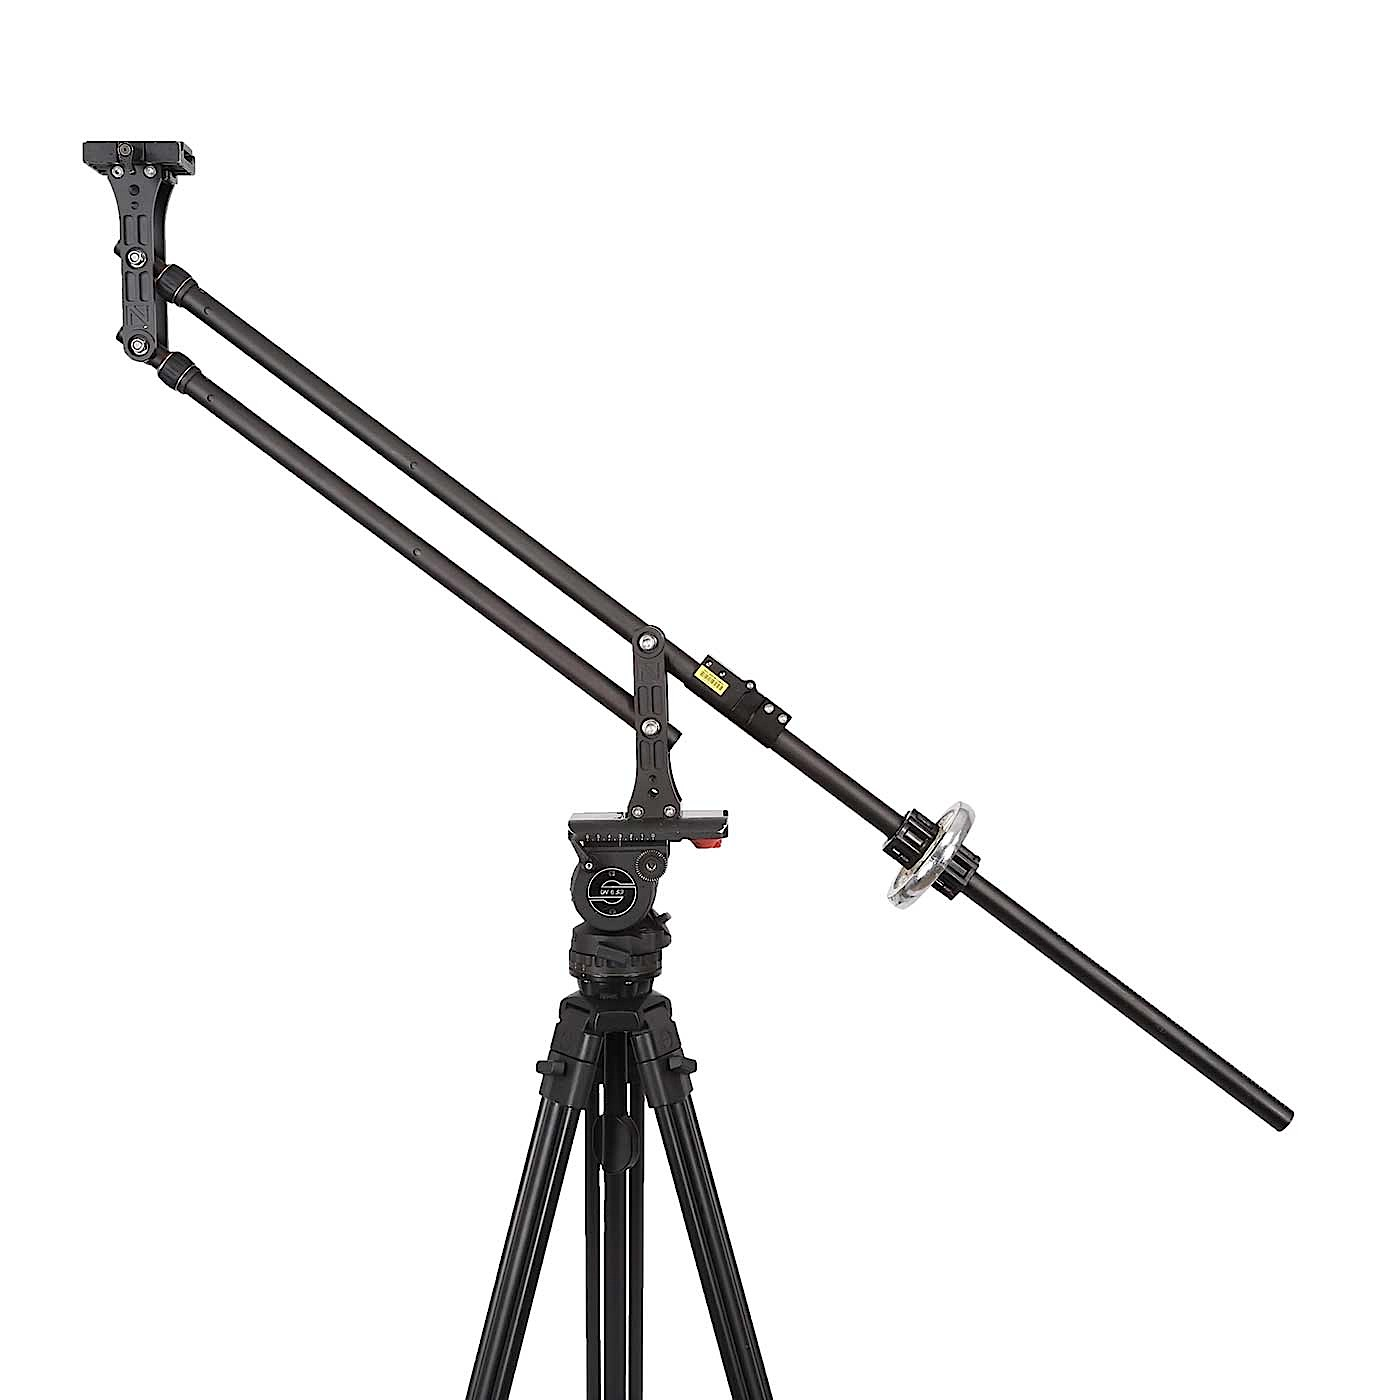 Genus Mini Jib